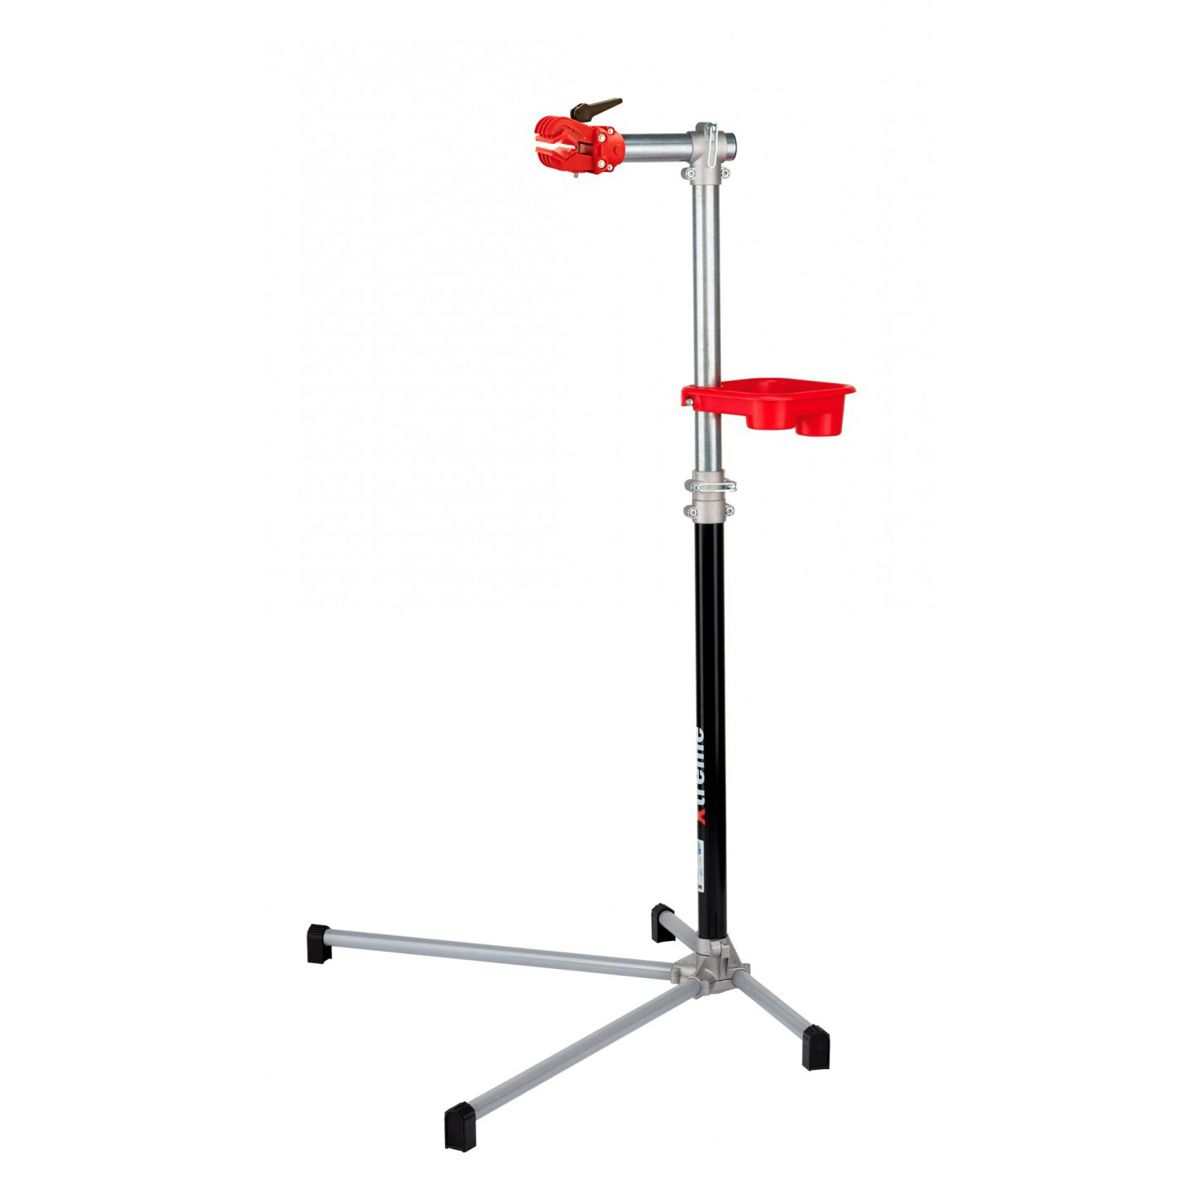 Buy Xtreme S 1300 Workstand Our Top Seller Rose Bikes